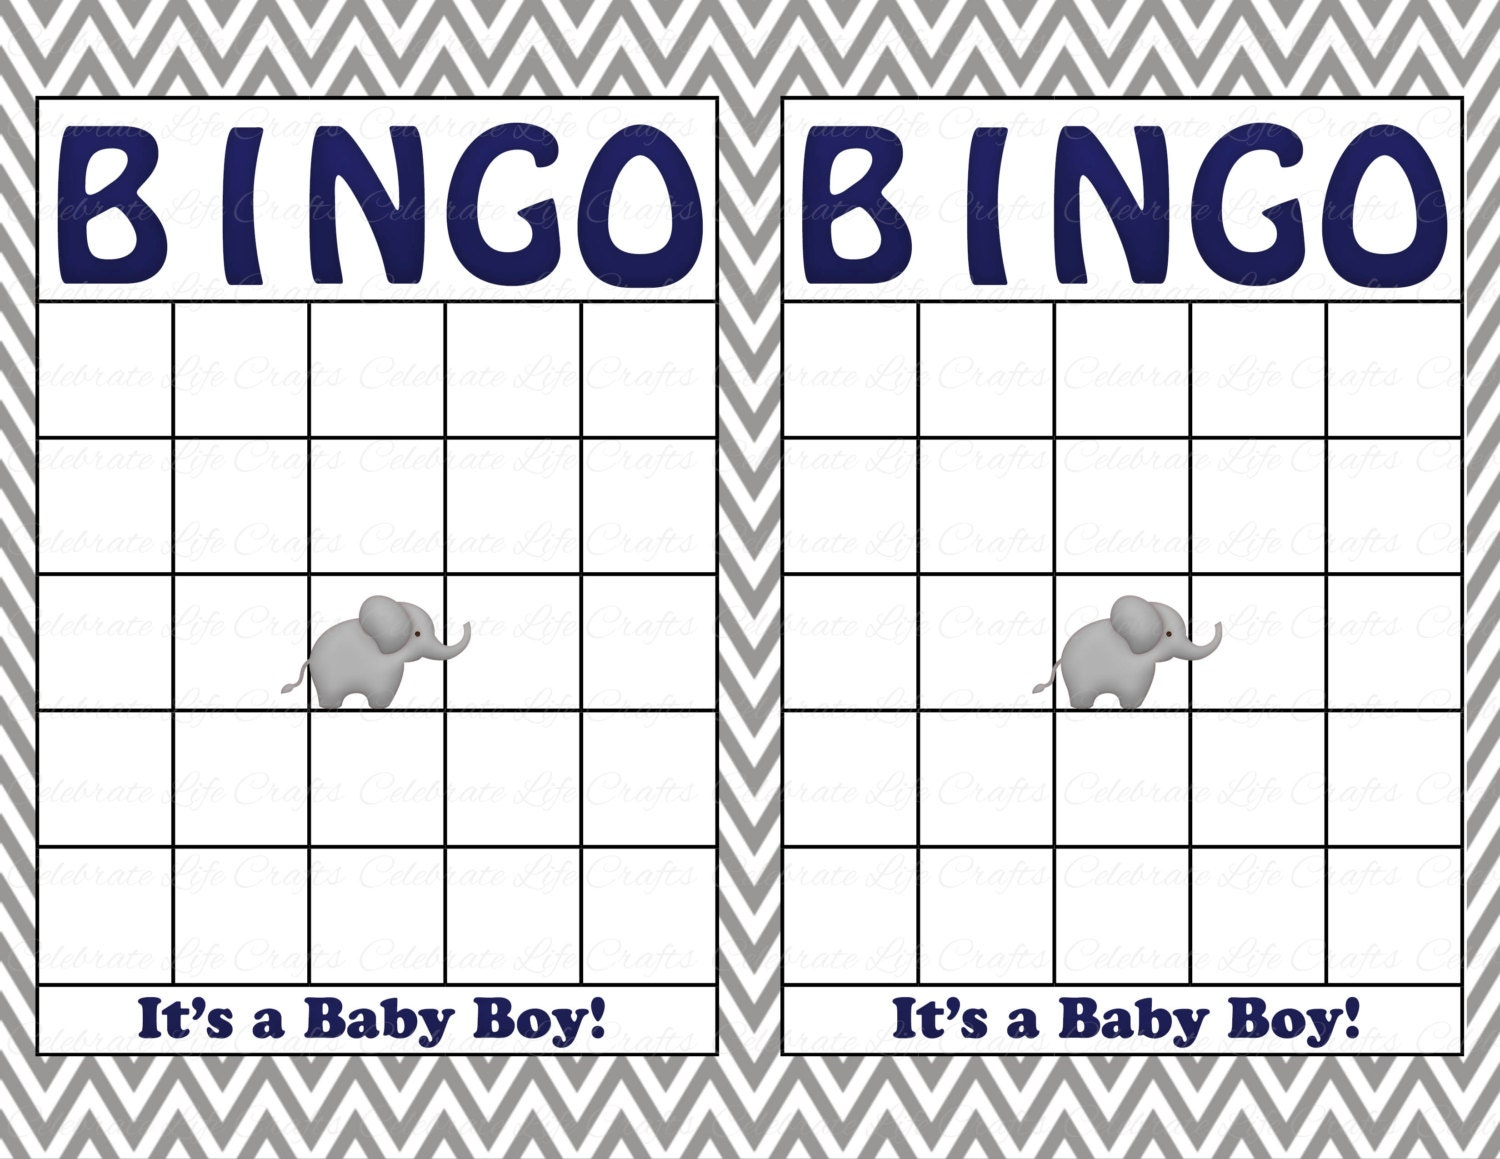 It's just a graphic of Old Fashioned Printable Baby Shower Bingo Cards